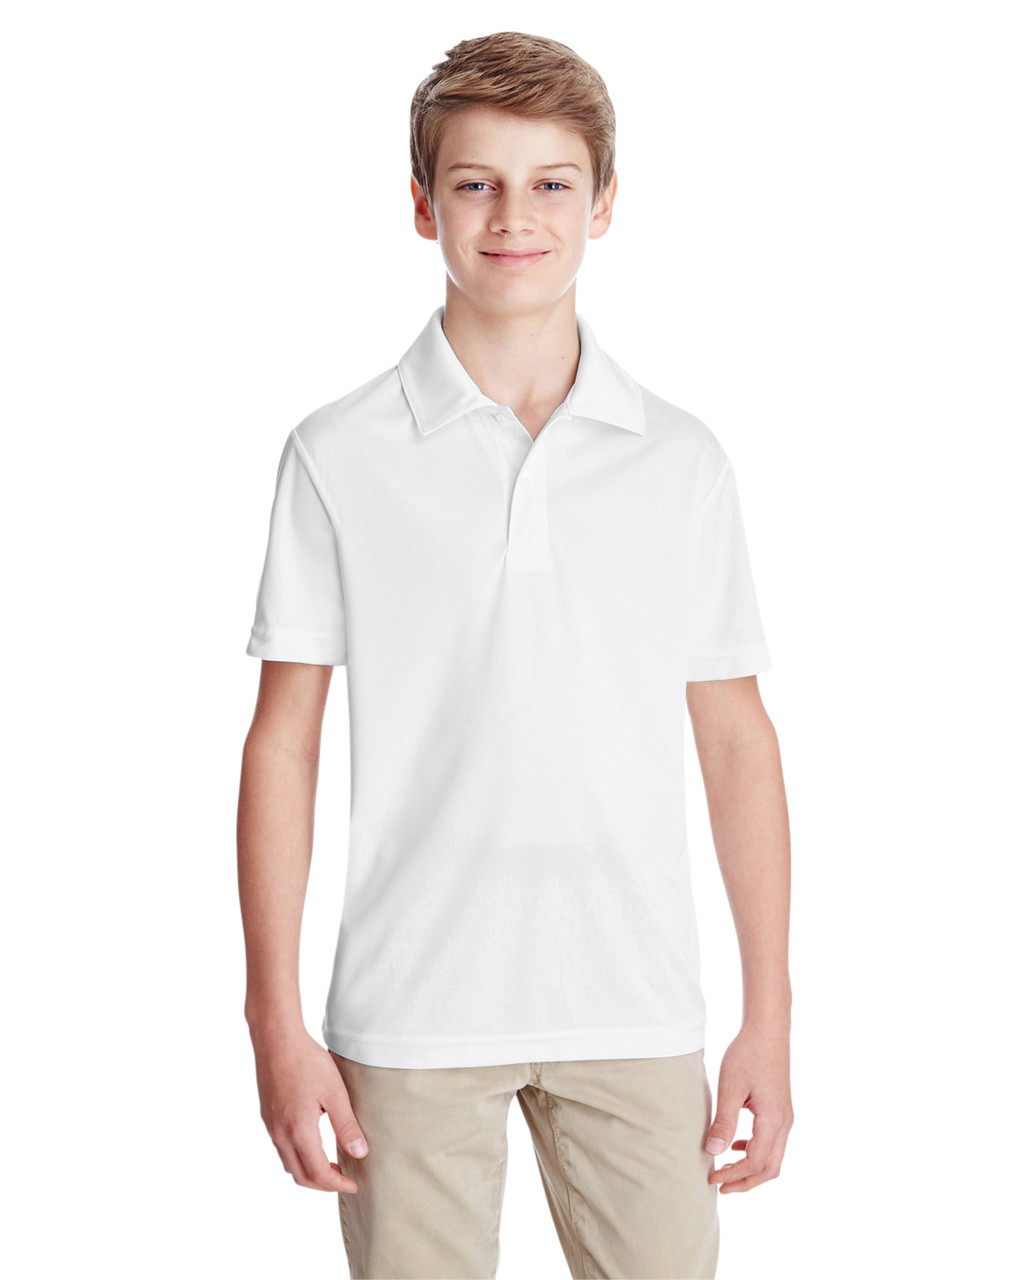 White - TT51Y Team 365 Youth Zone Performance Polo Shirt